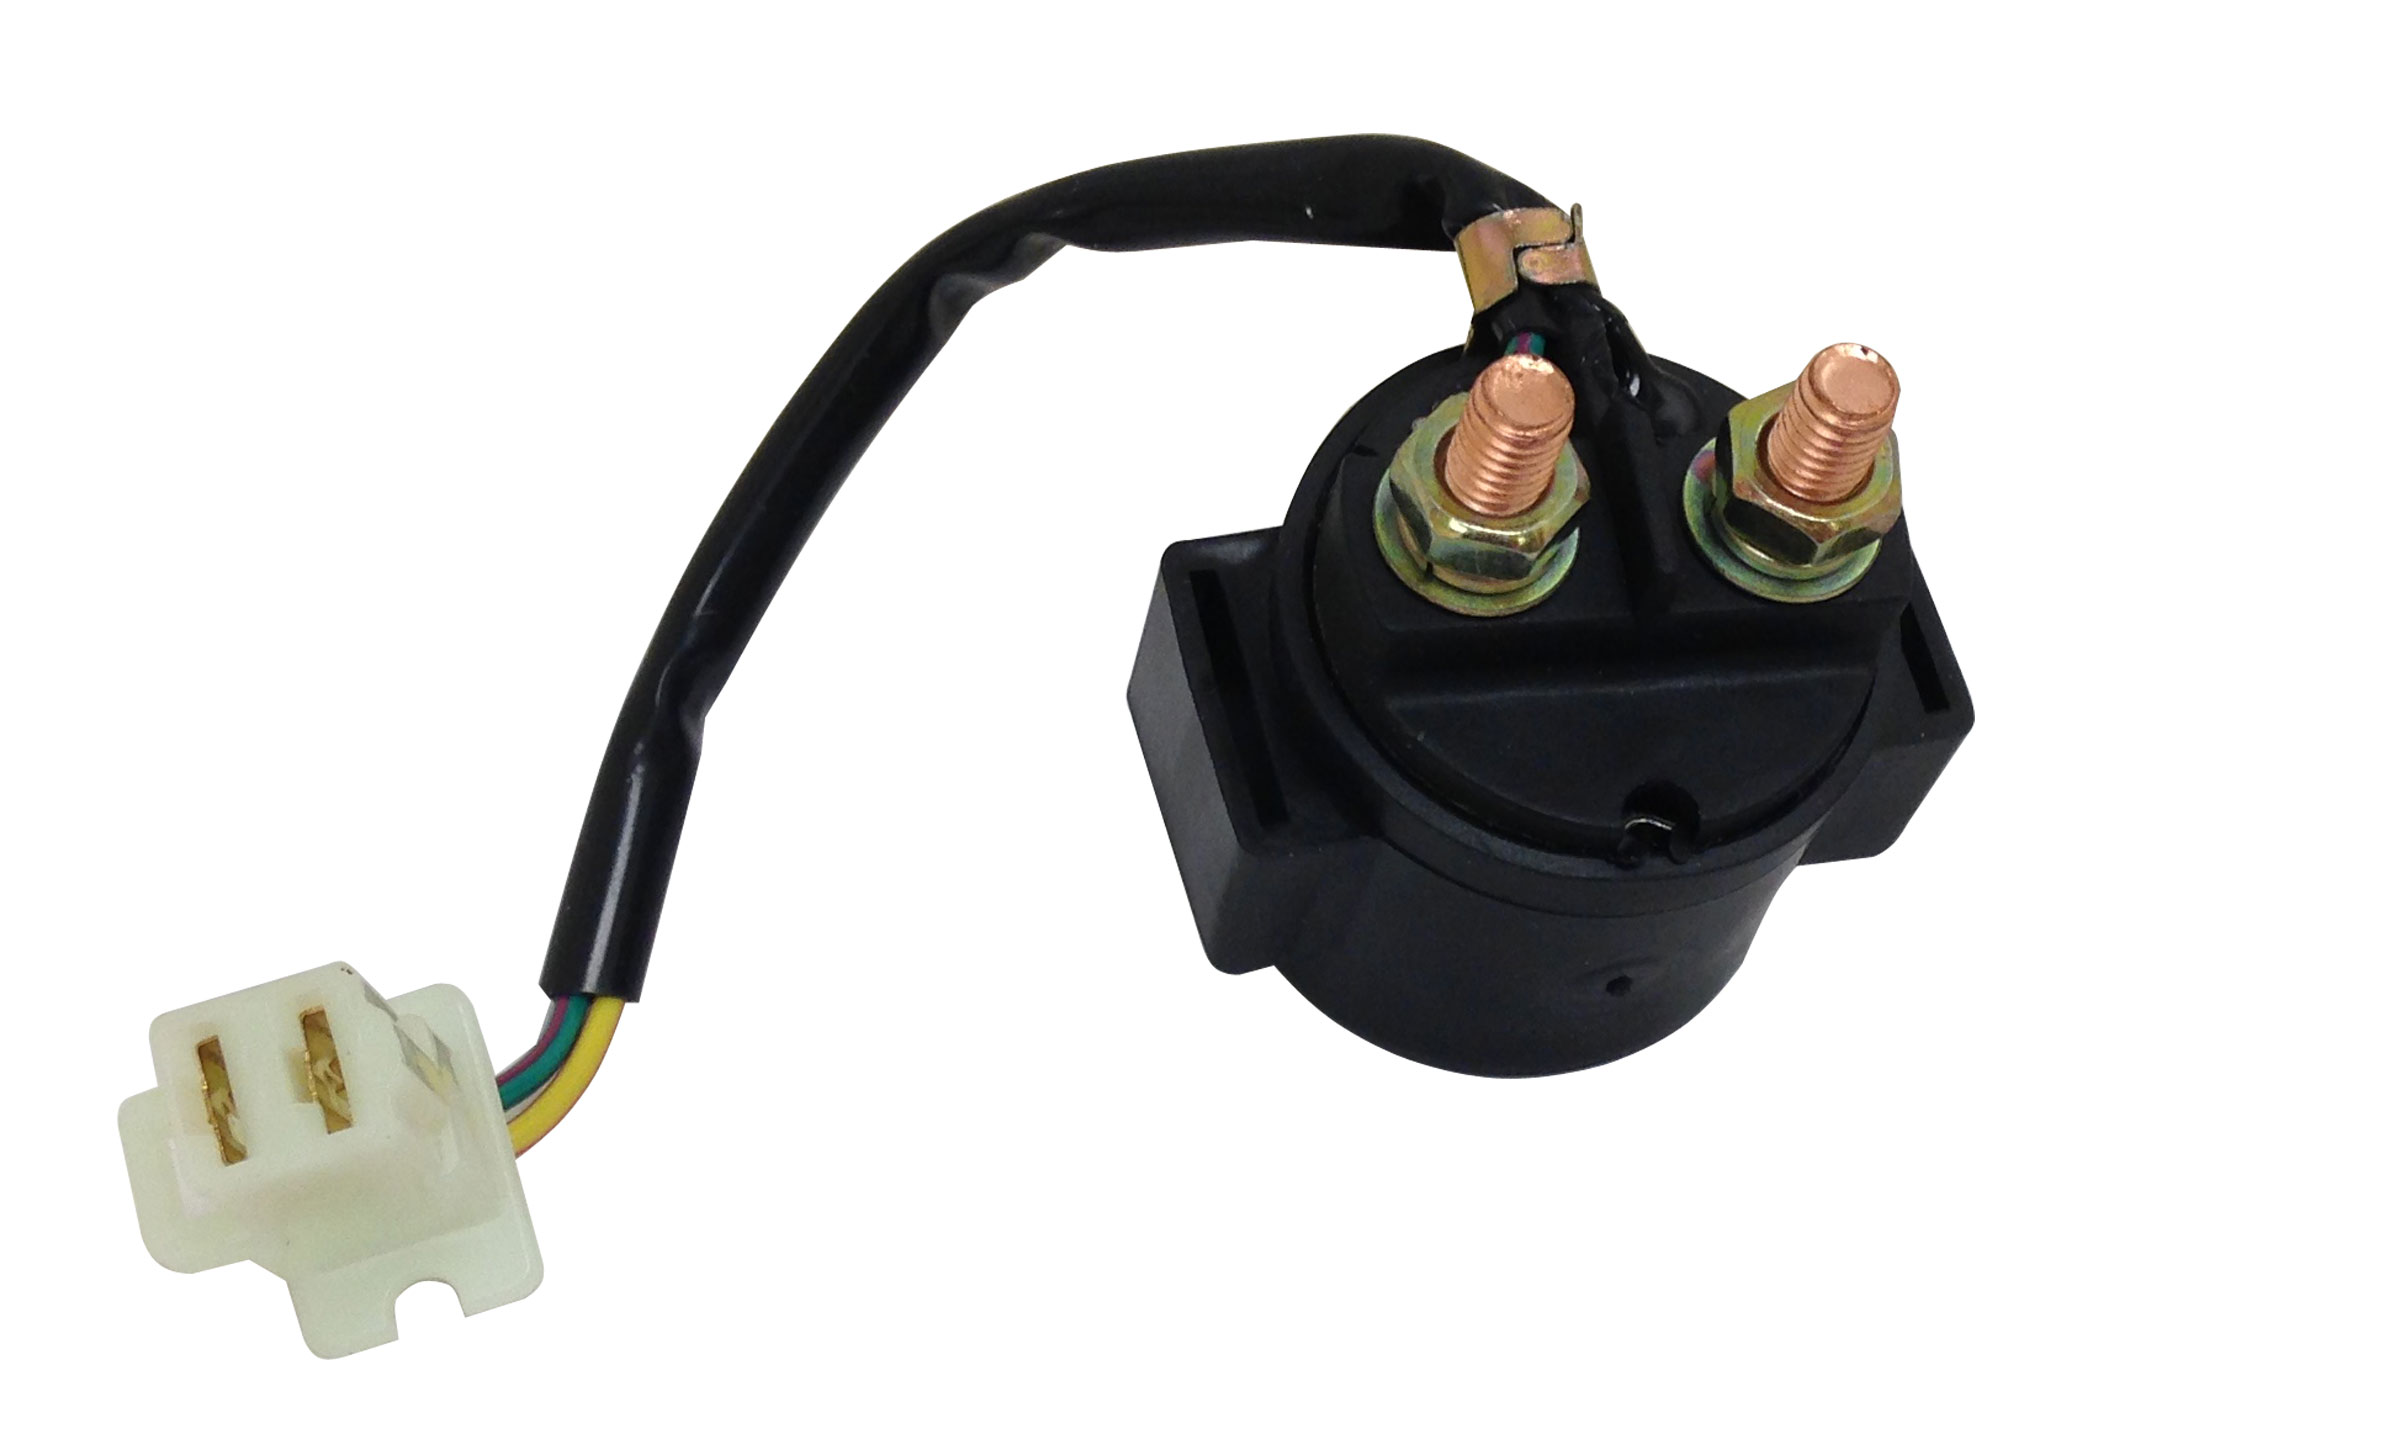 Starter Relay Solenoid for 150cc Go Karts | 400494 | BMI Karts And Parts